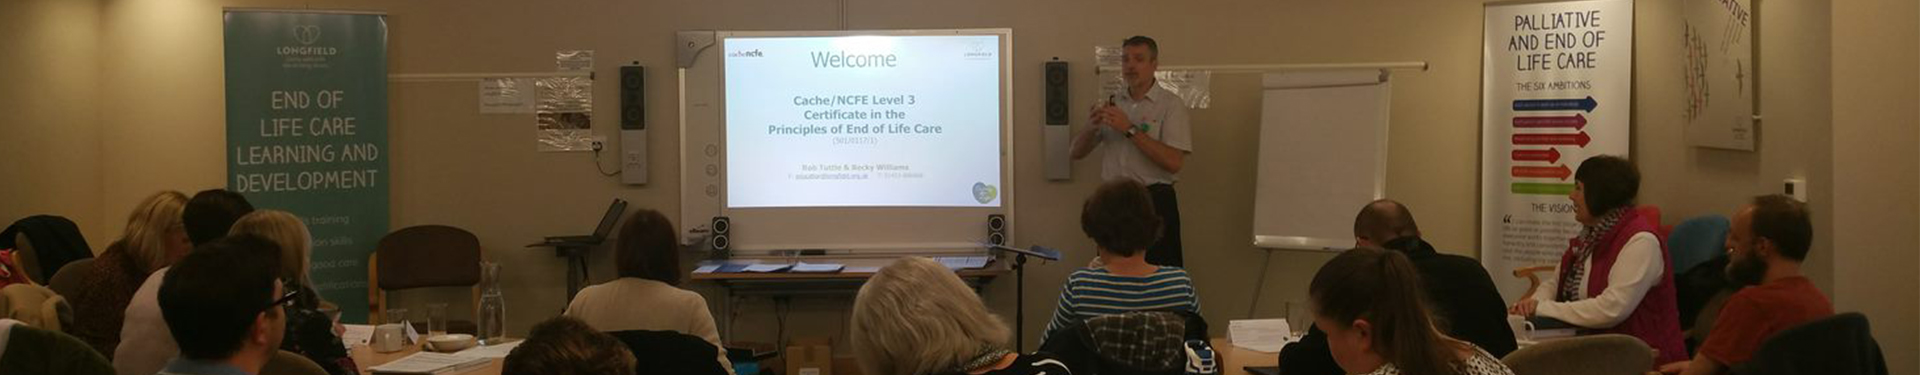 Full end of life care training session